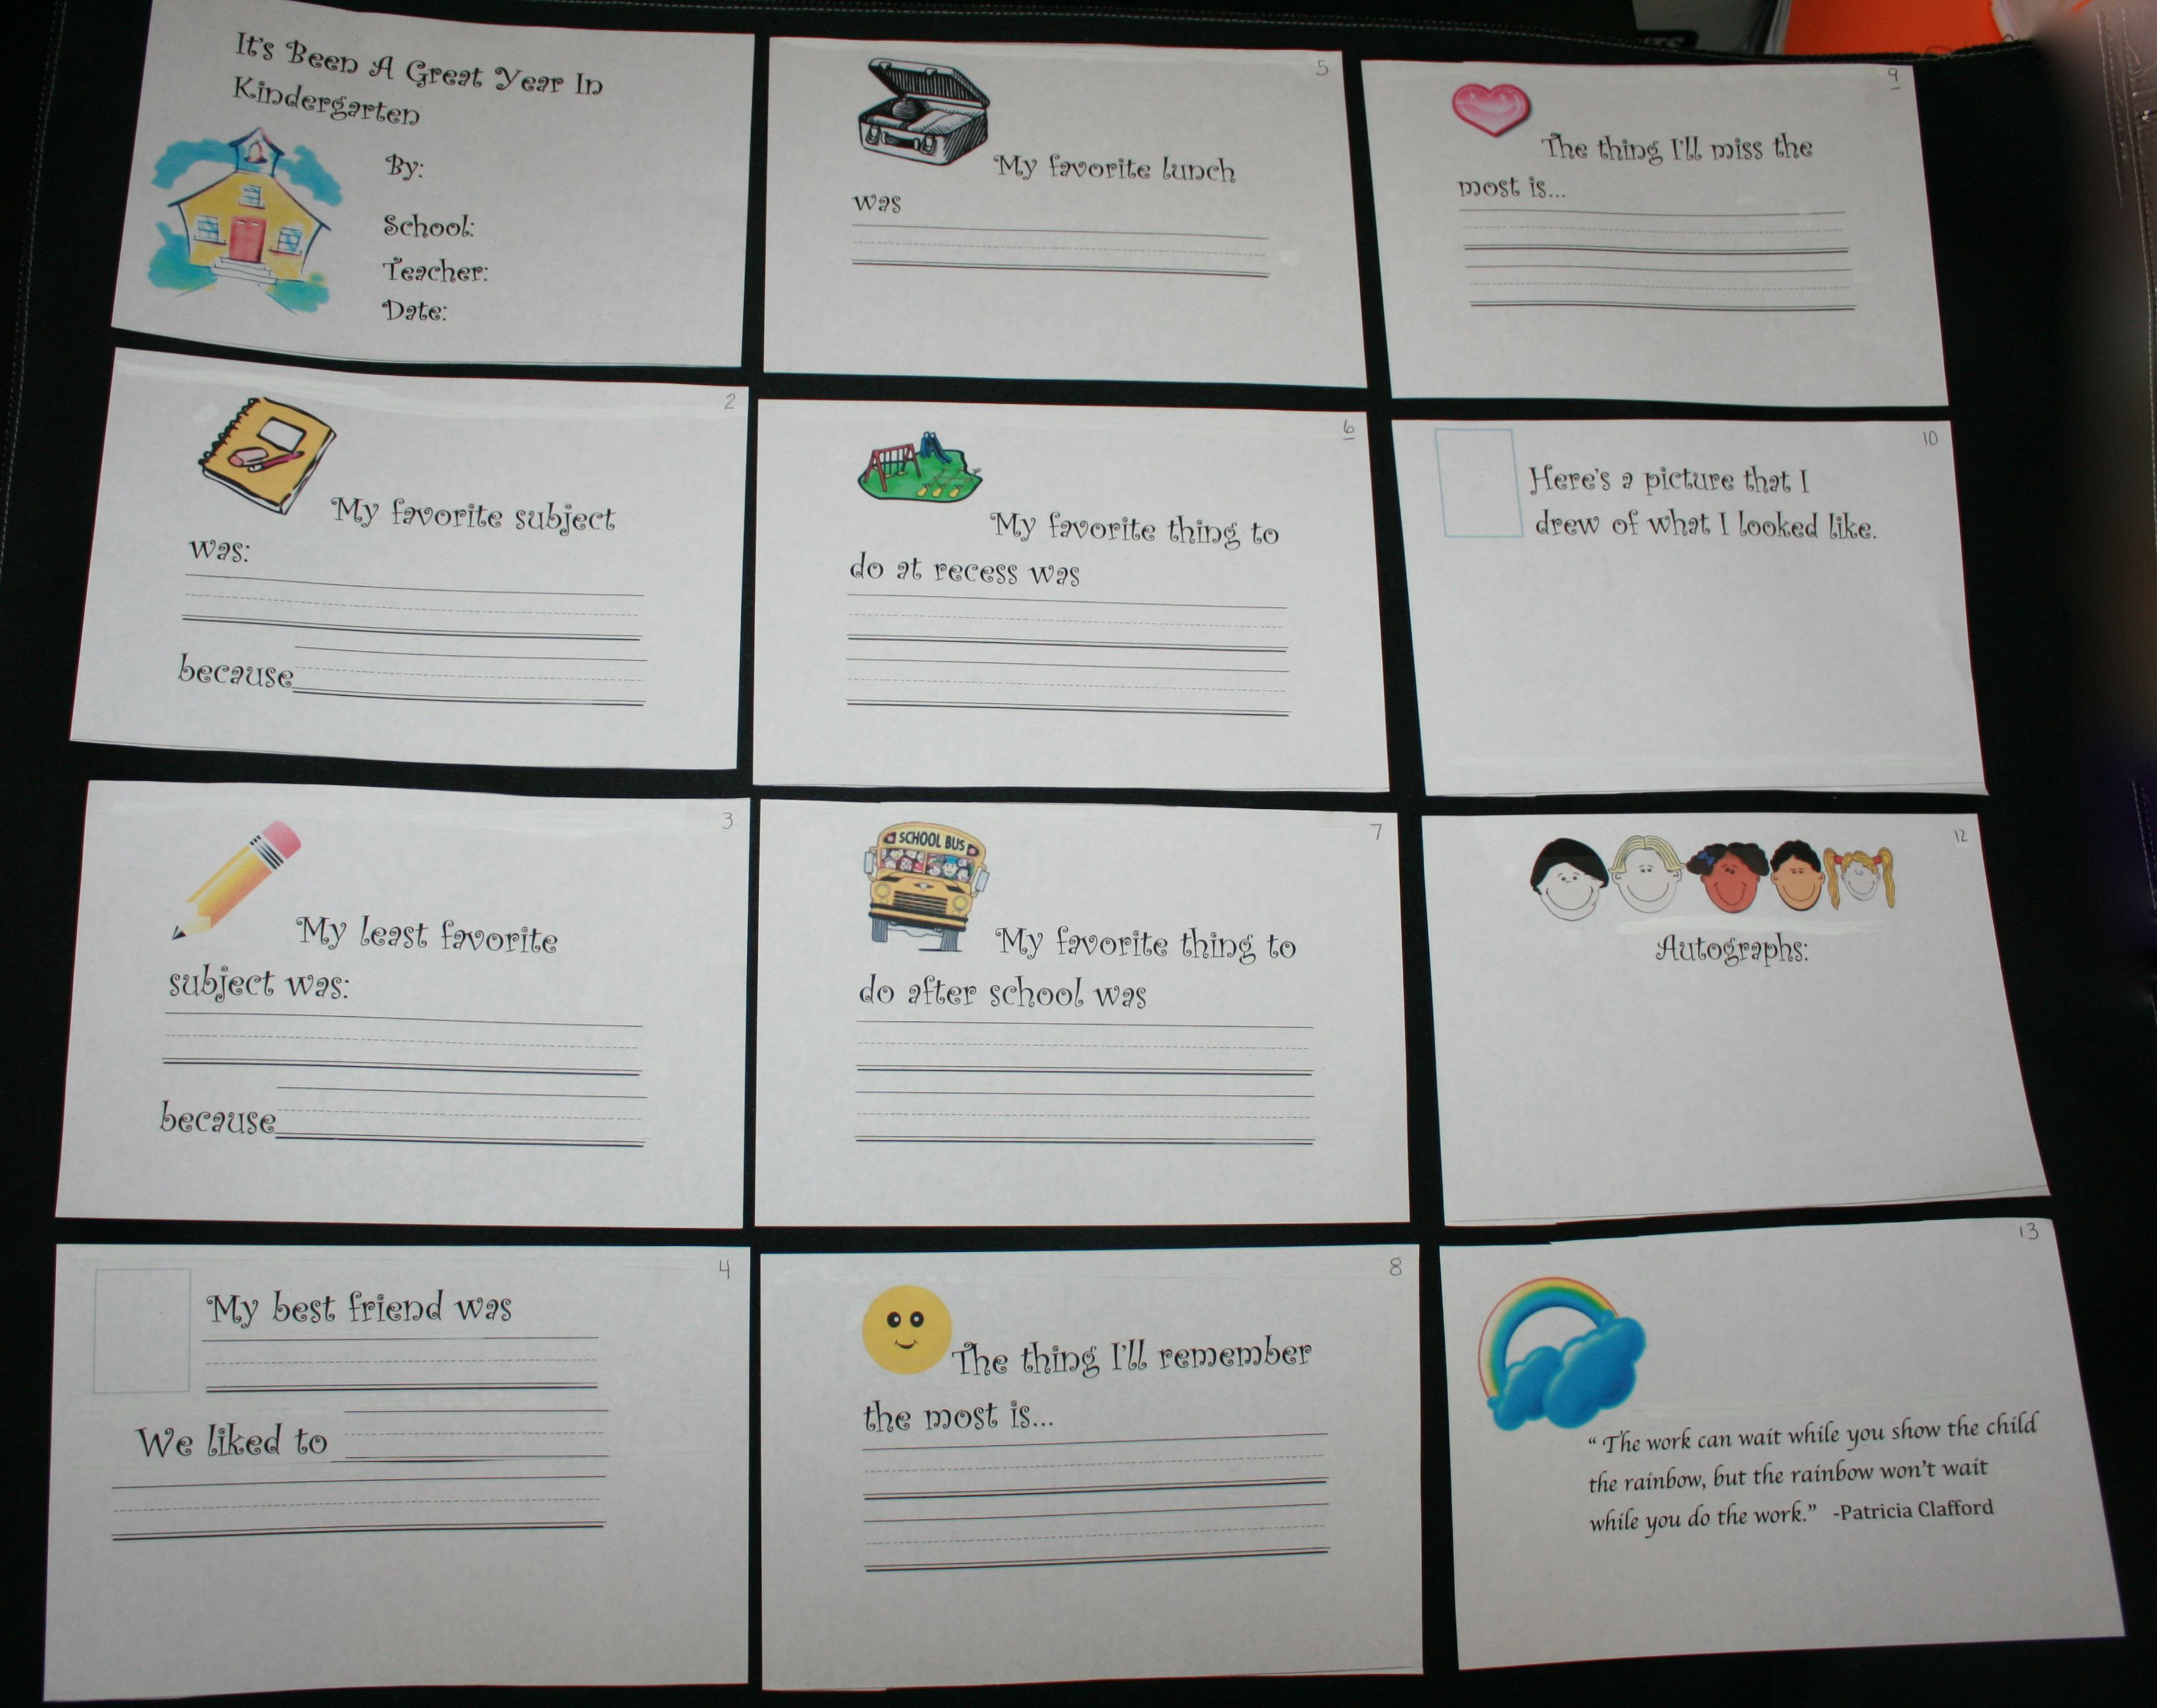 School Memory Book For A Fun End Of The Year Writing Prompt Different Covers For Preschool 2nd